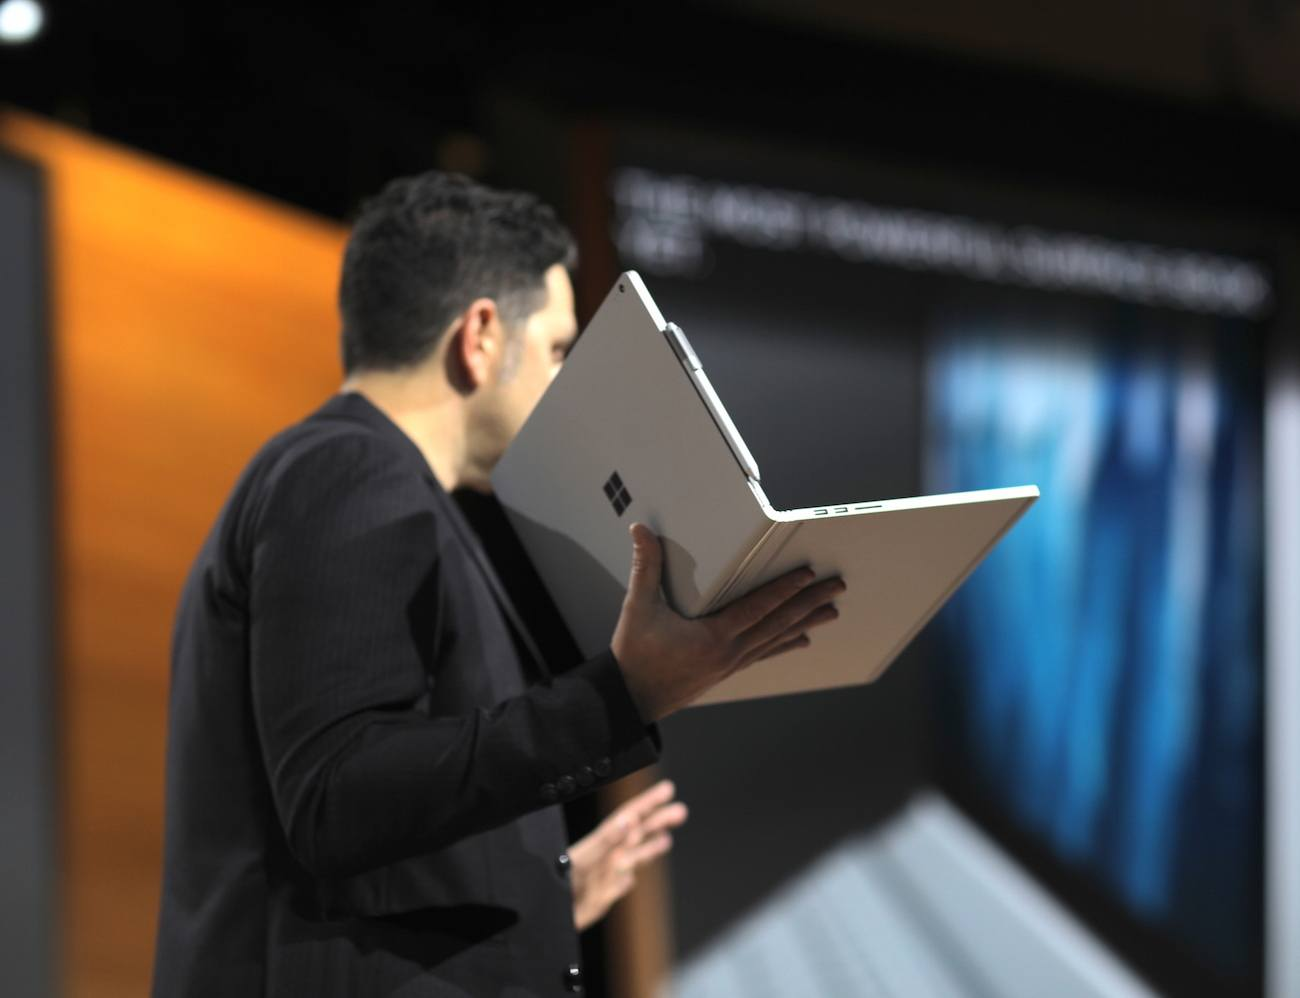 New+Surface+Book+With+Performance+Base+By+Microsoft